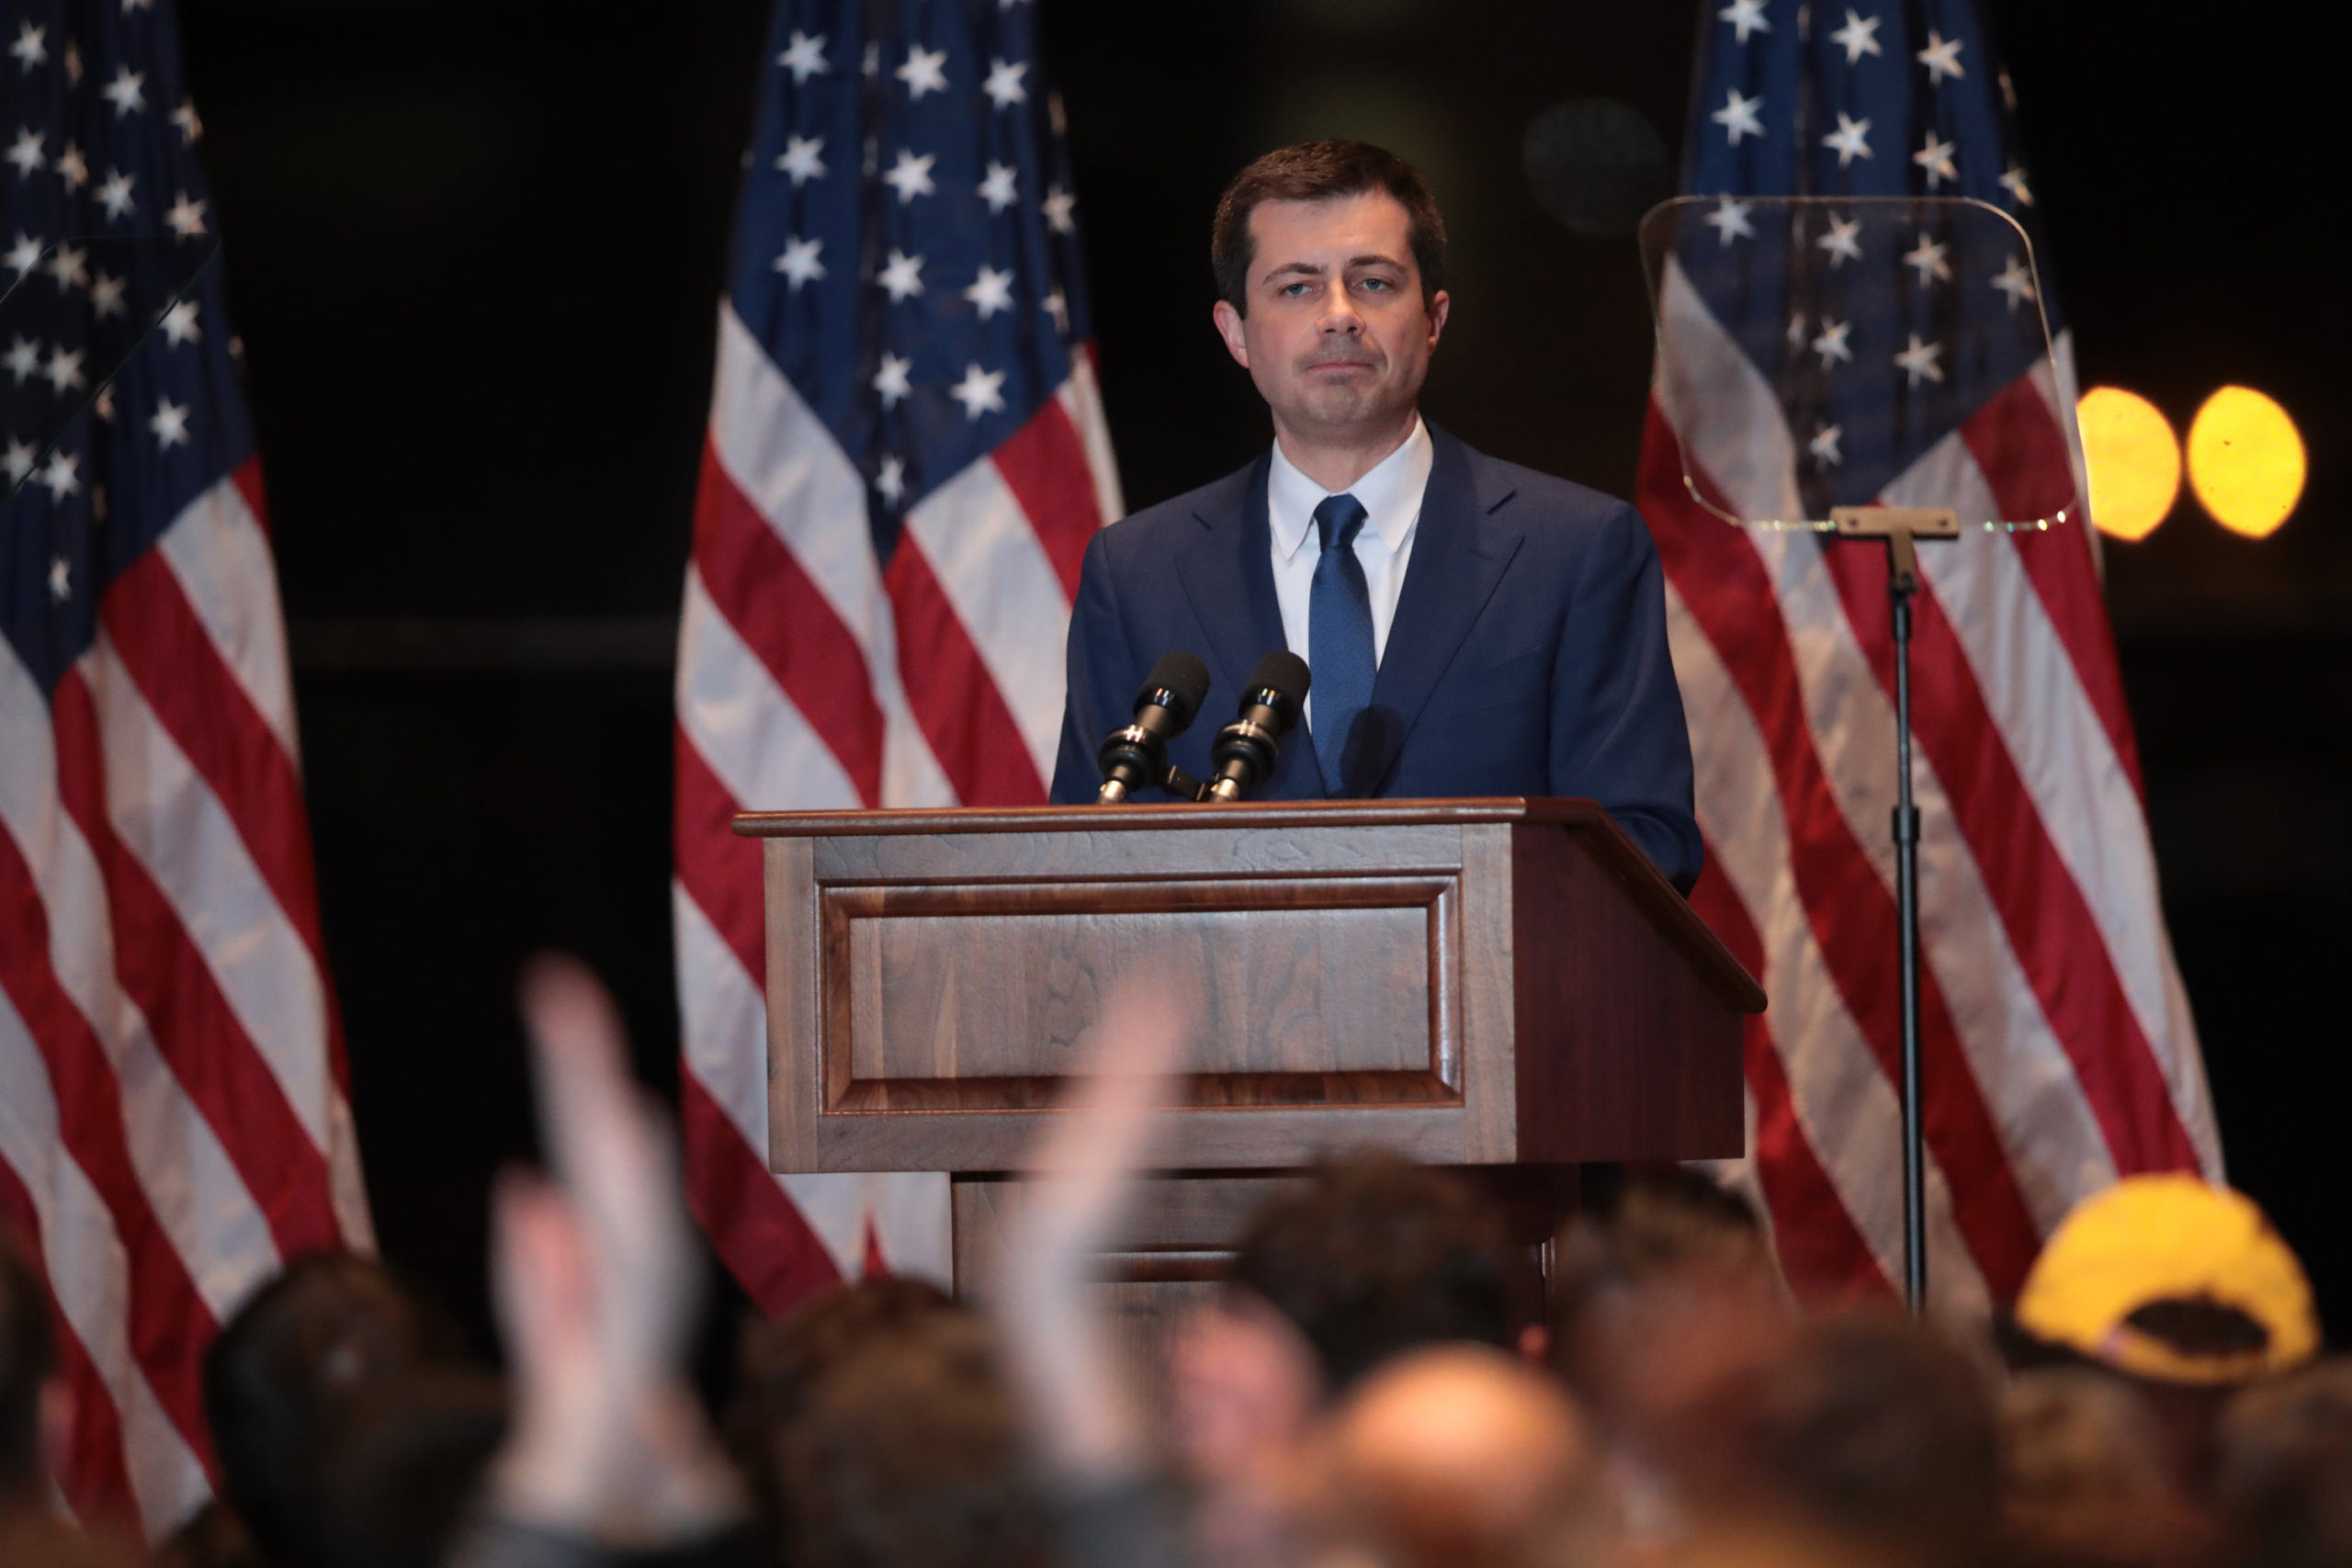 Former South Bend, Indiana Mayor Pete Buttigieg announces he is ending his campaign to be the Democratic nominee for president on March 1, 2020